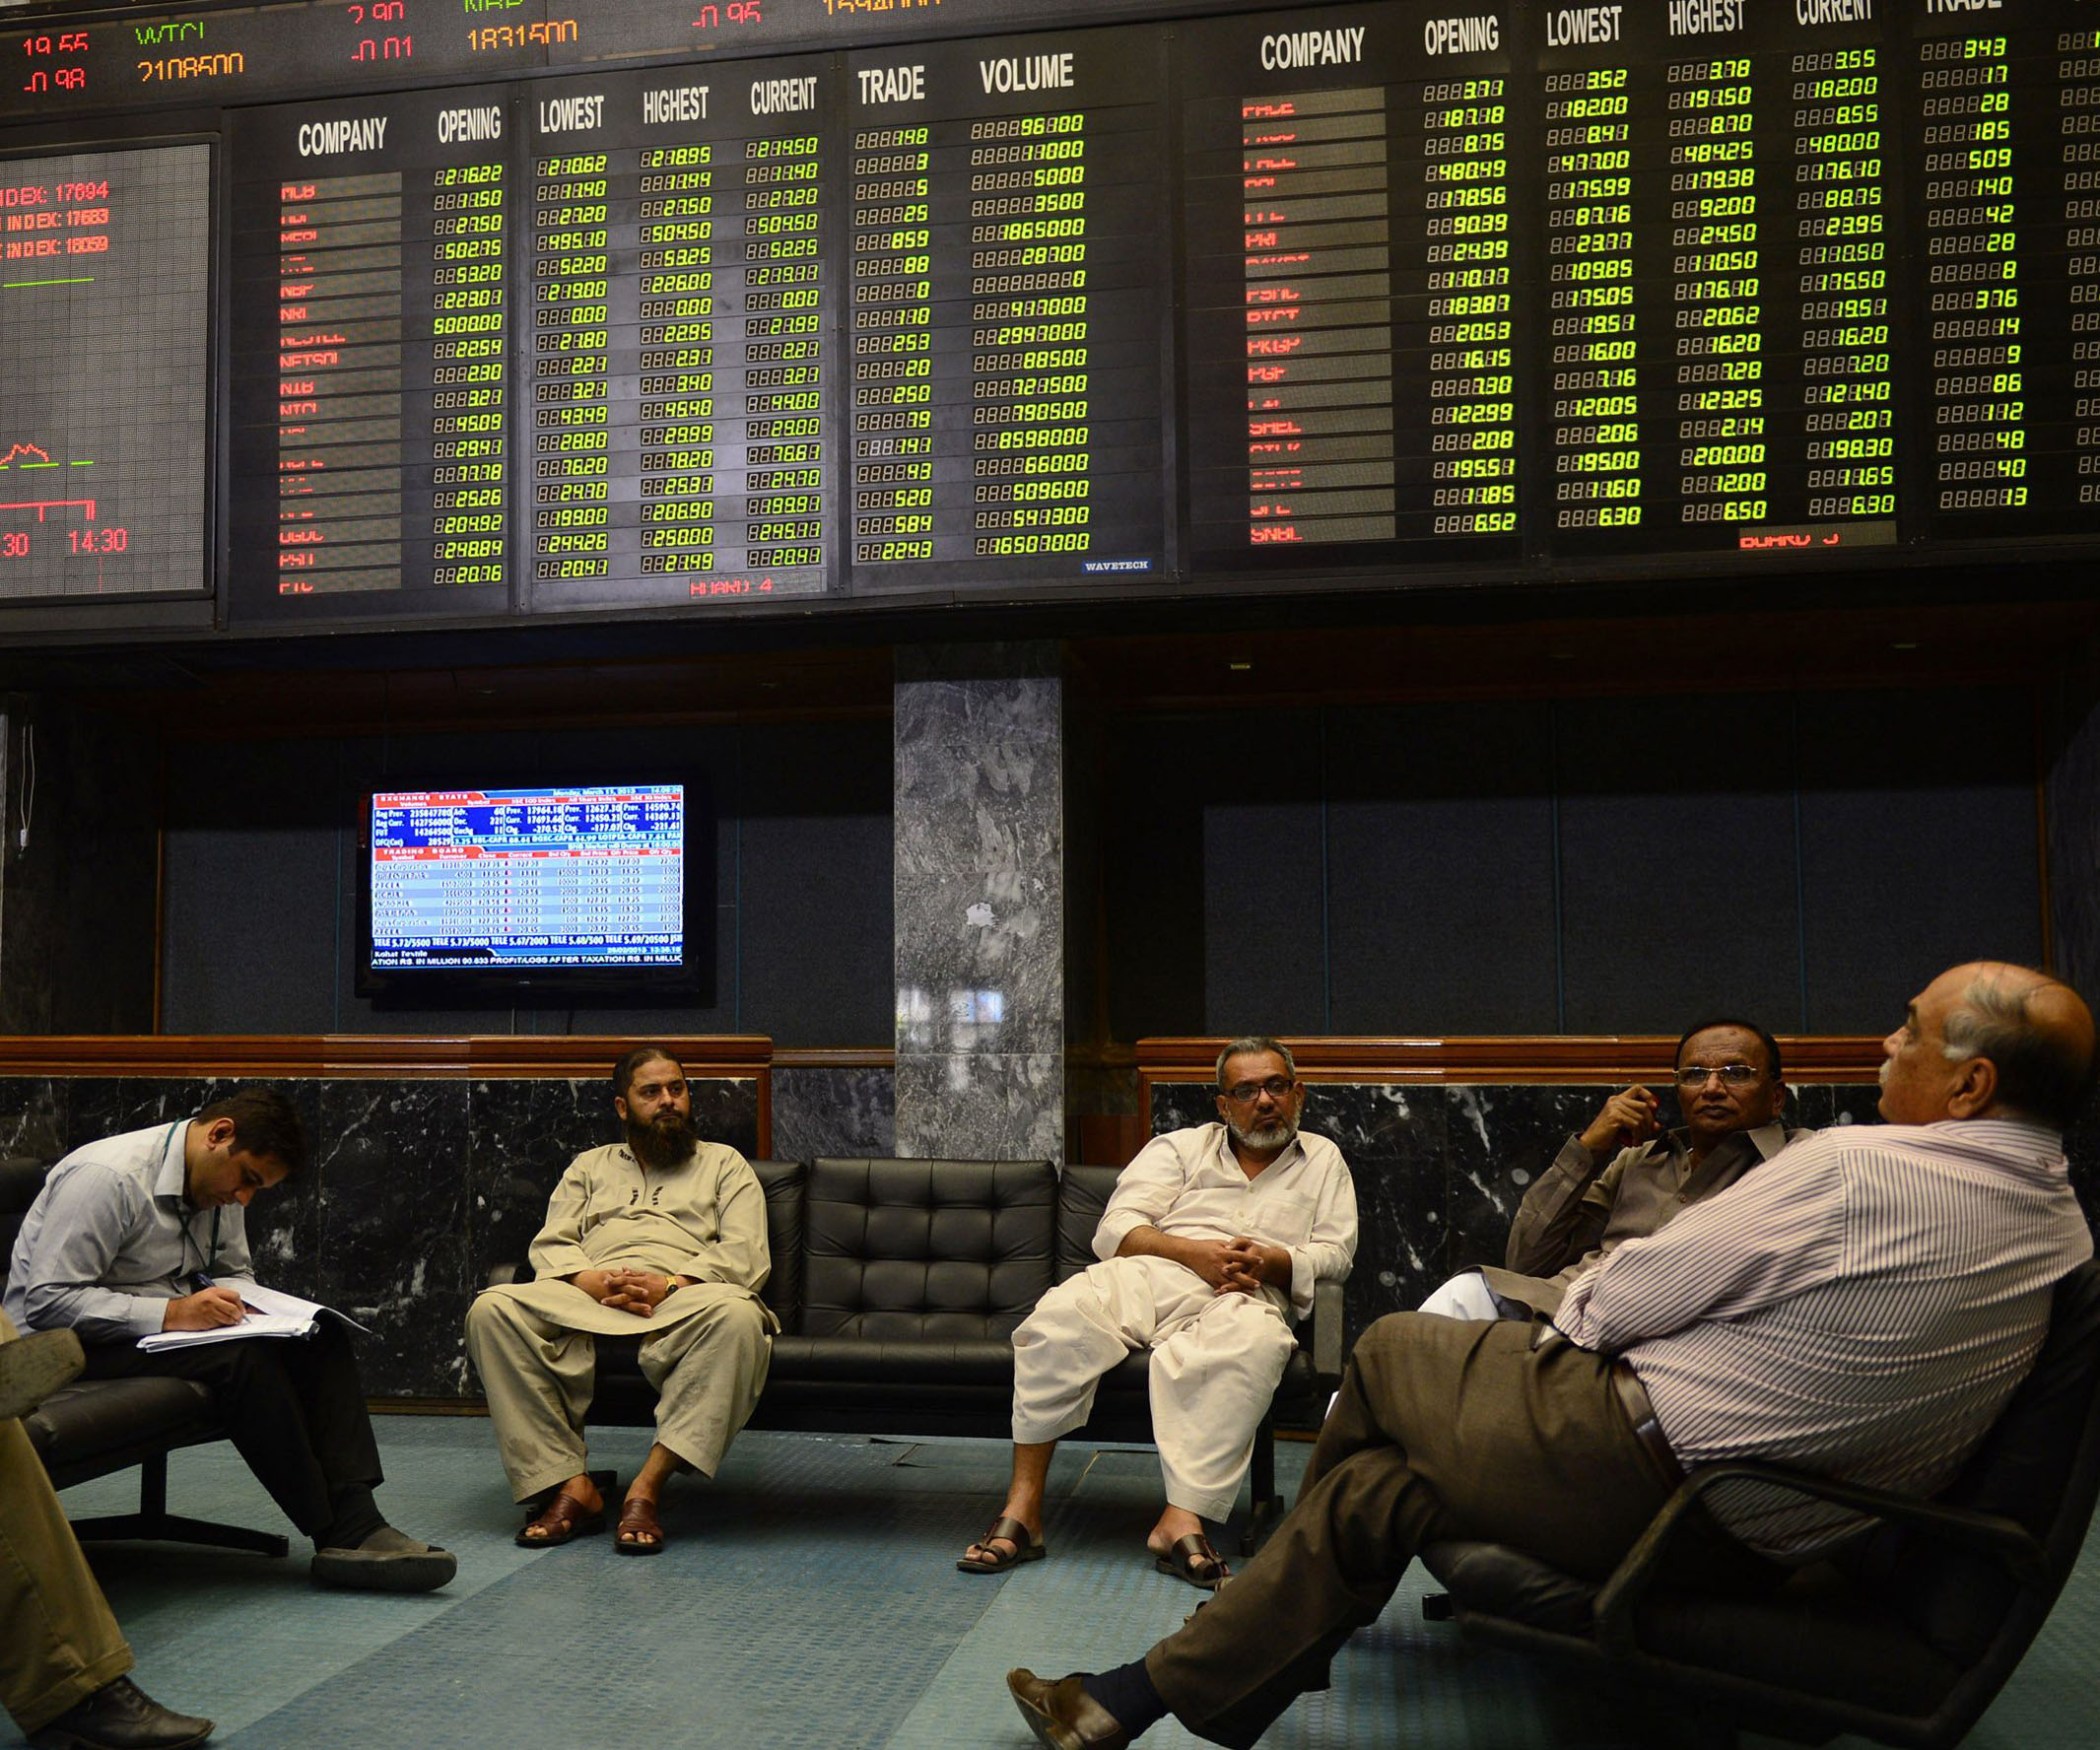 Benchmark index decreases 0.94% to finish at 43,679.87. PHOTO: AFP